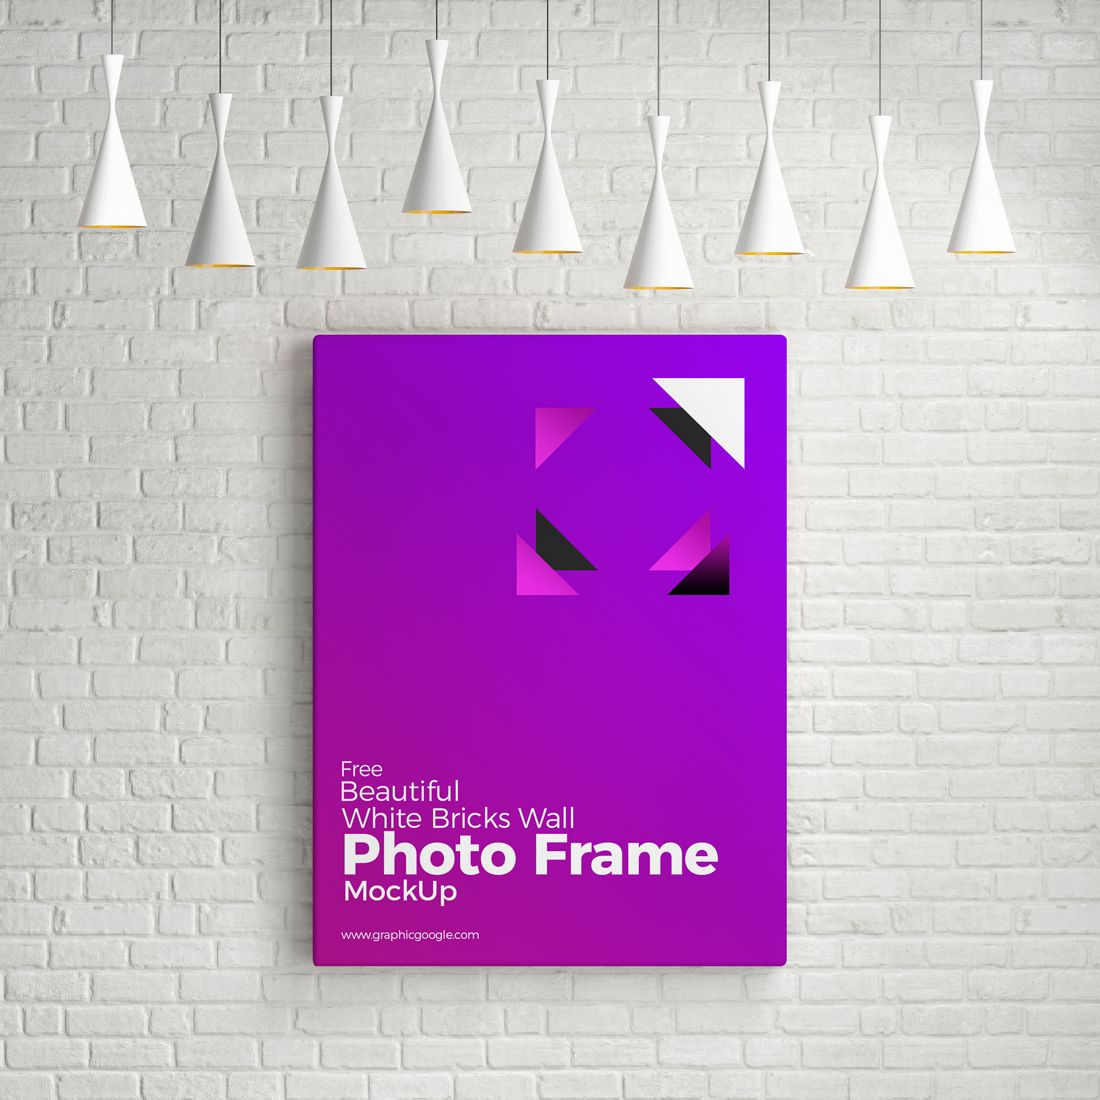 Free Beautiful White Bricks Wall Photo Frame Mockup Psd 7 19 Mb Graphic Google Free Photoshop Mockup Psd Beauti Photo Frame Wall Frame Mockups Frame